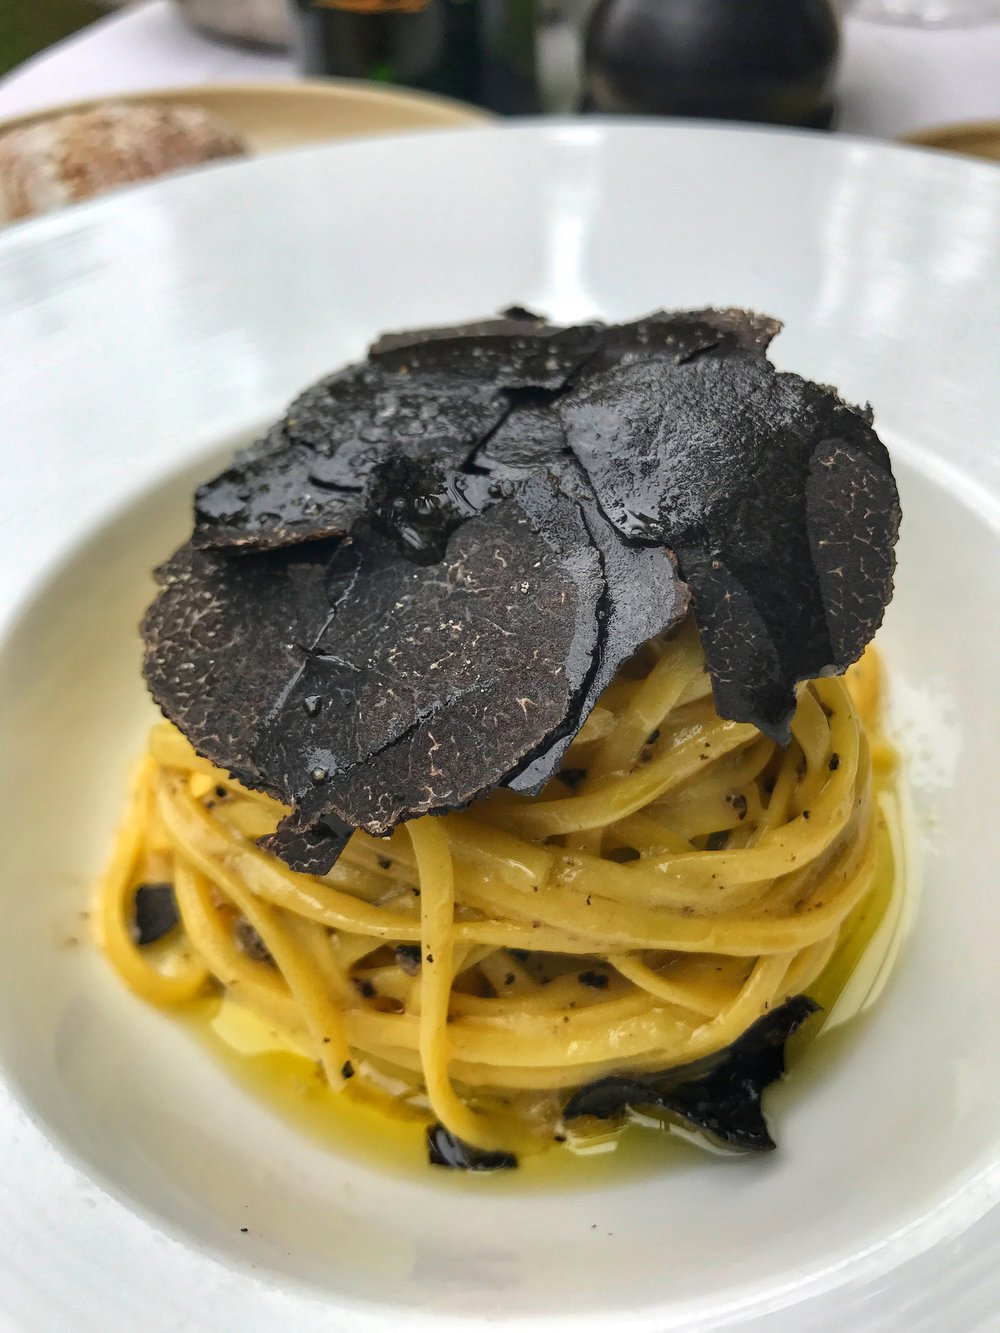 Fresh pasta served with a light creamy truffled sauce and shaved truffle on top.